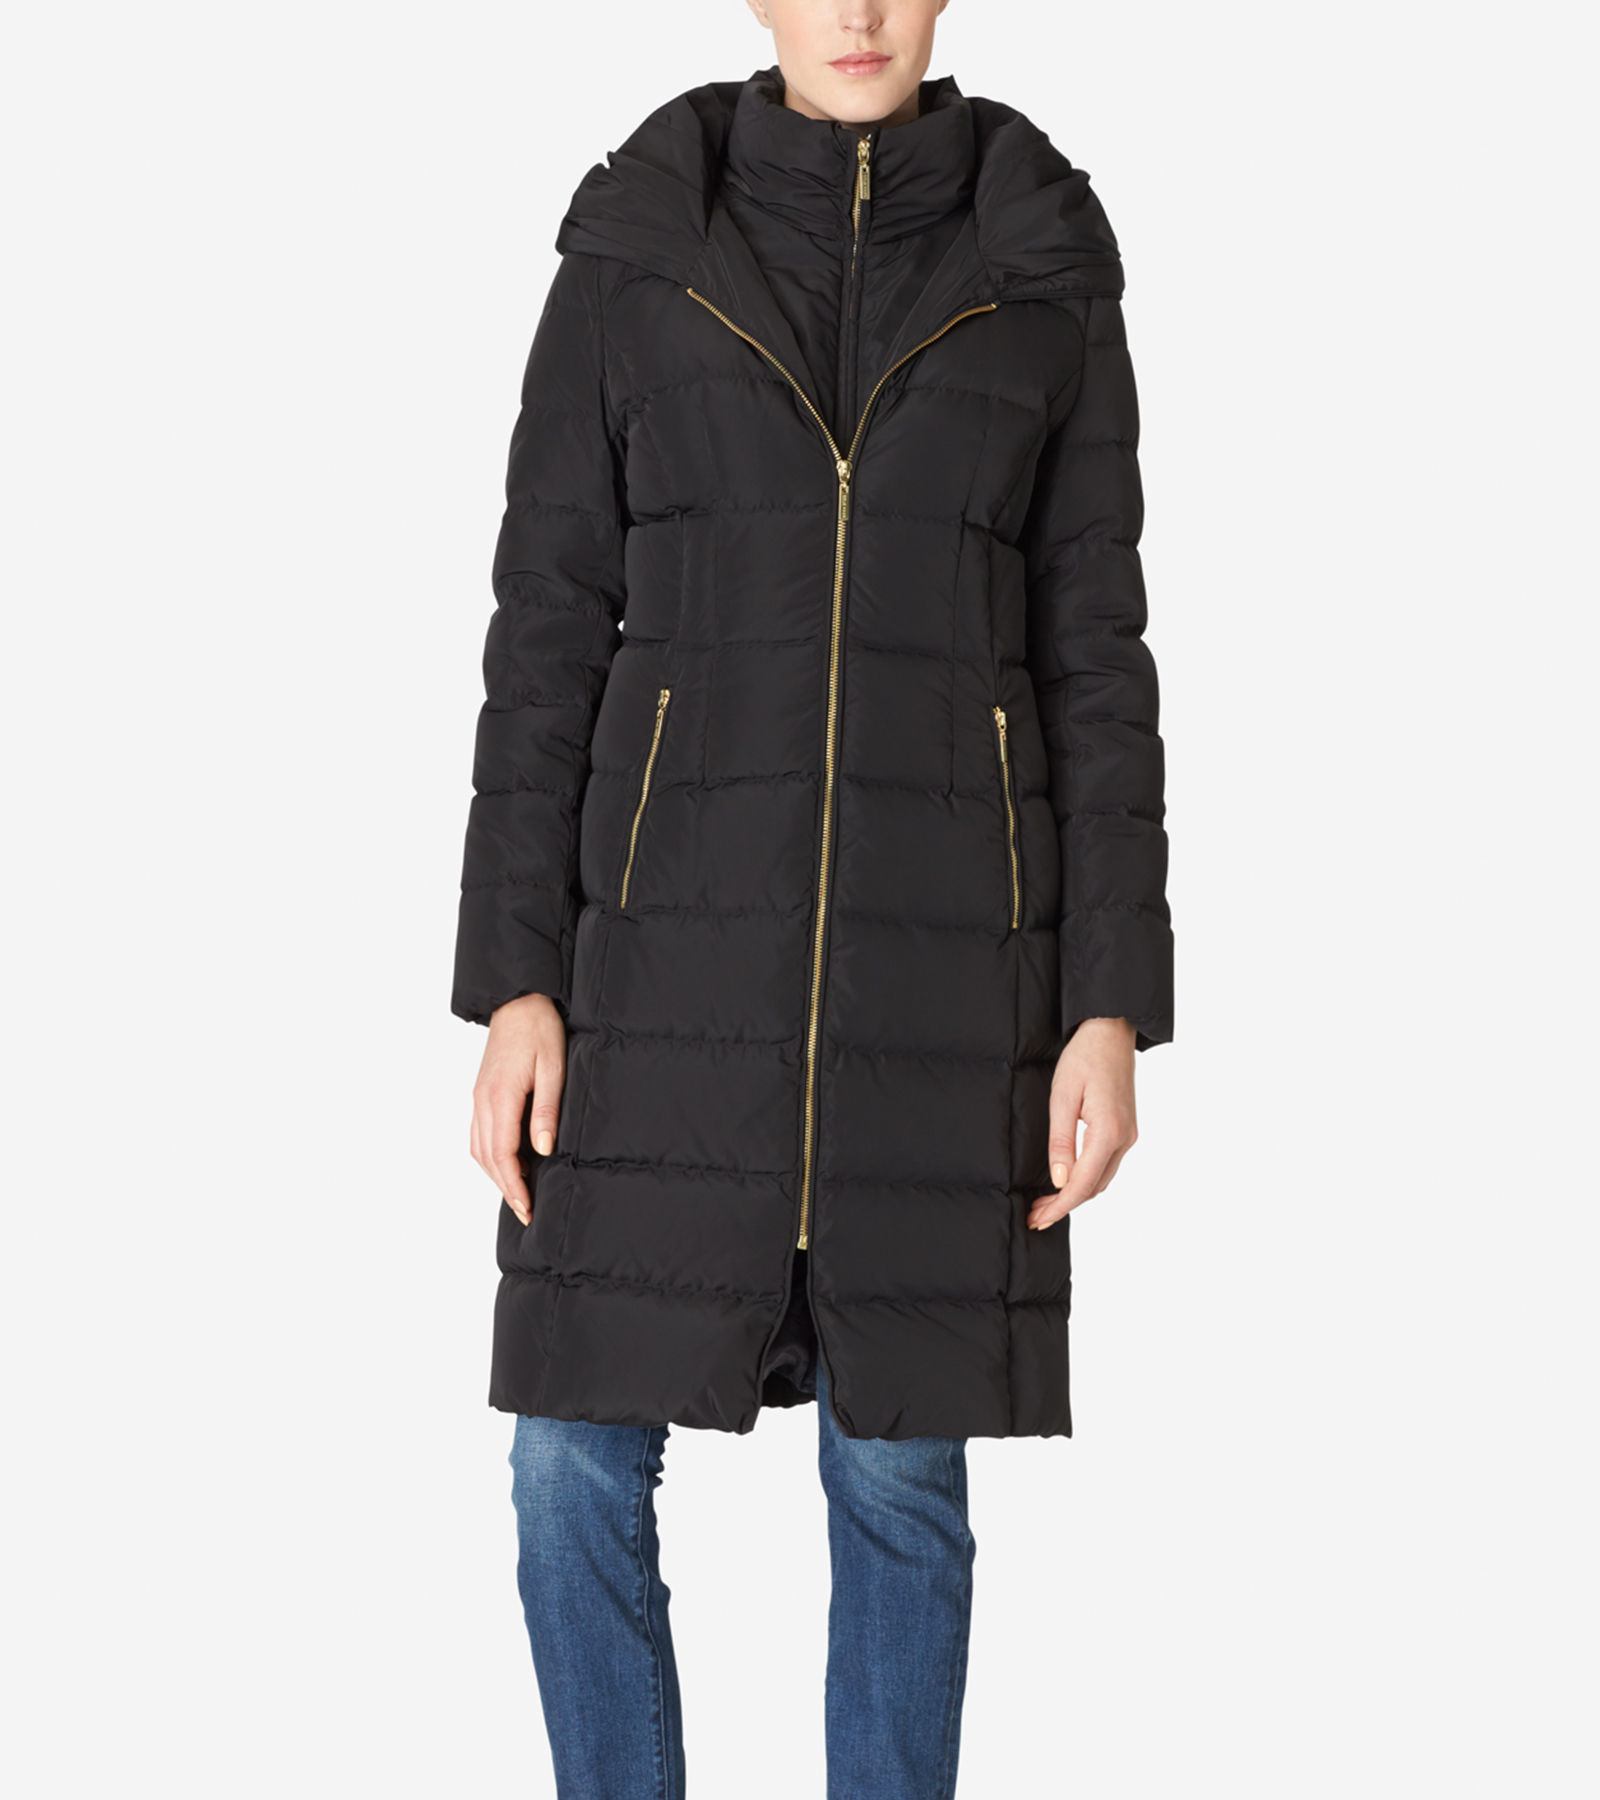 Women's Hooded Quilted Exposed Down Jacket in Black | Cole Haan